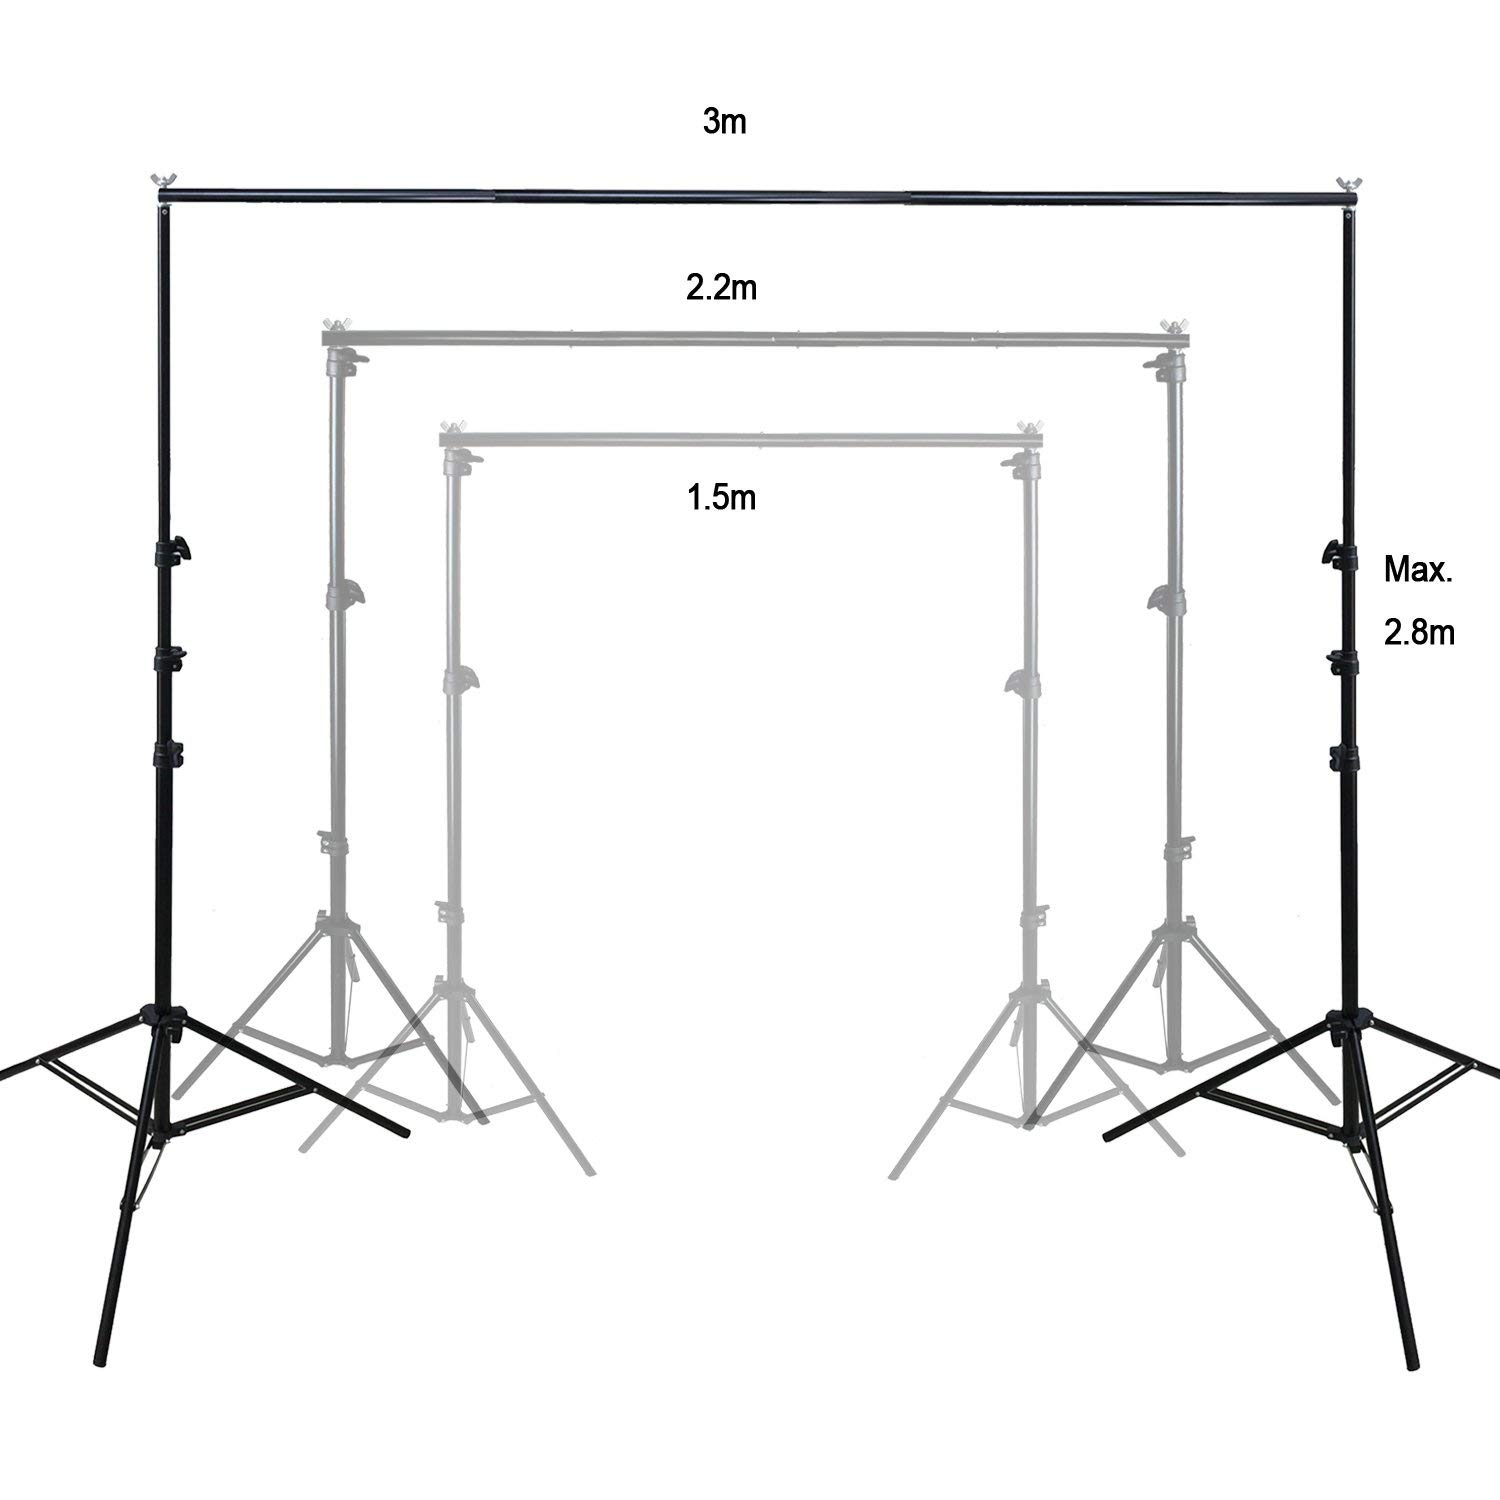 6.5/x 9 Inch Background Stand Support System Kit for Backdrops RPGT 2/m x 2.8/m